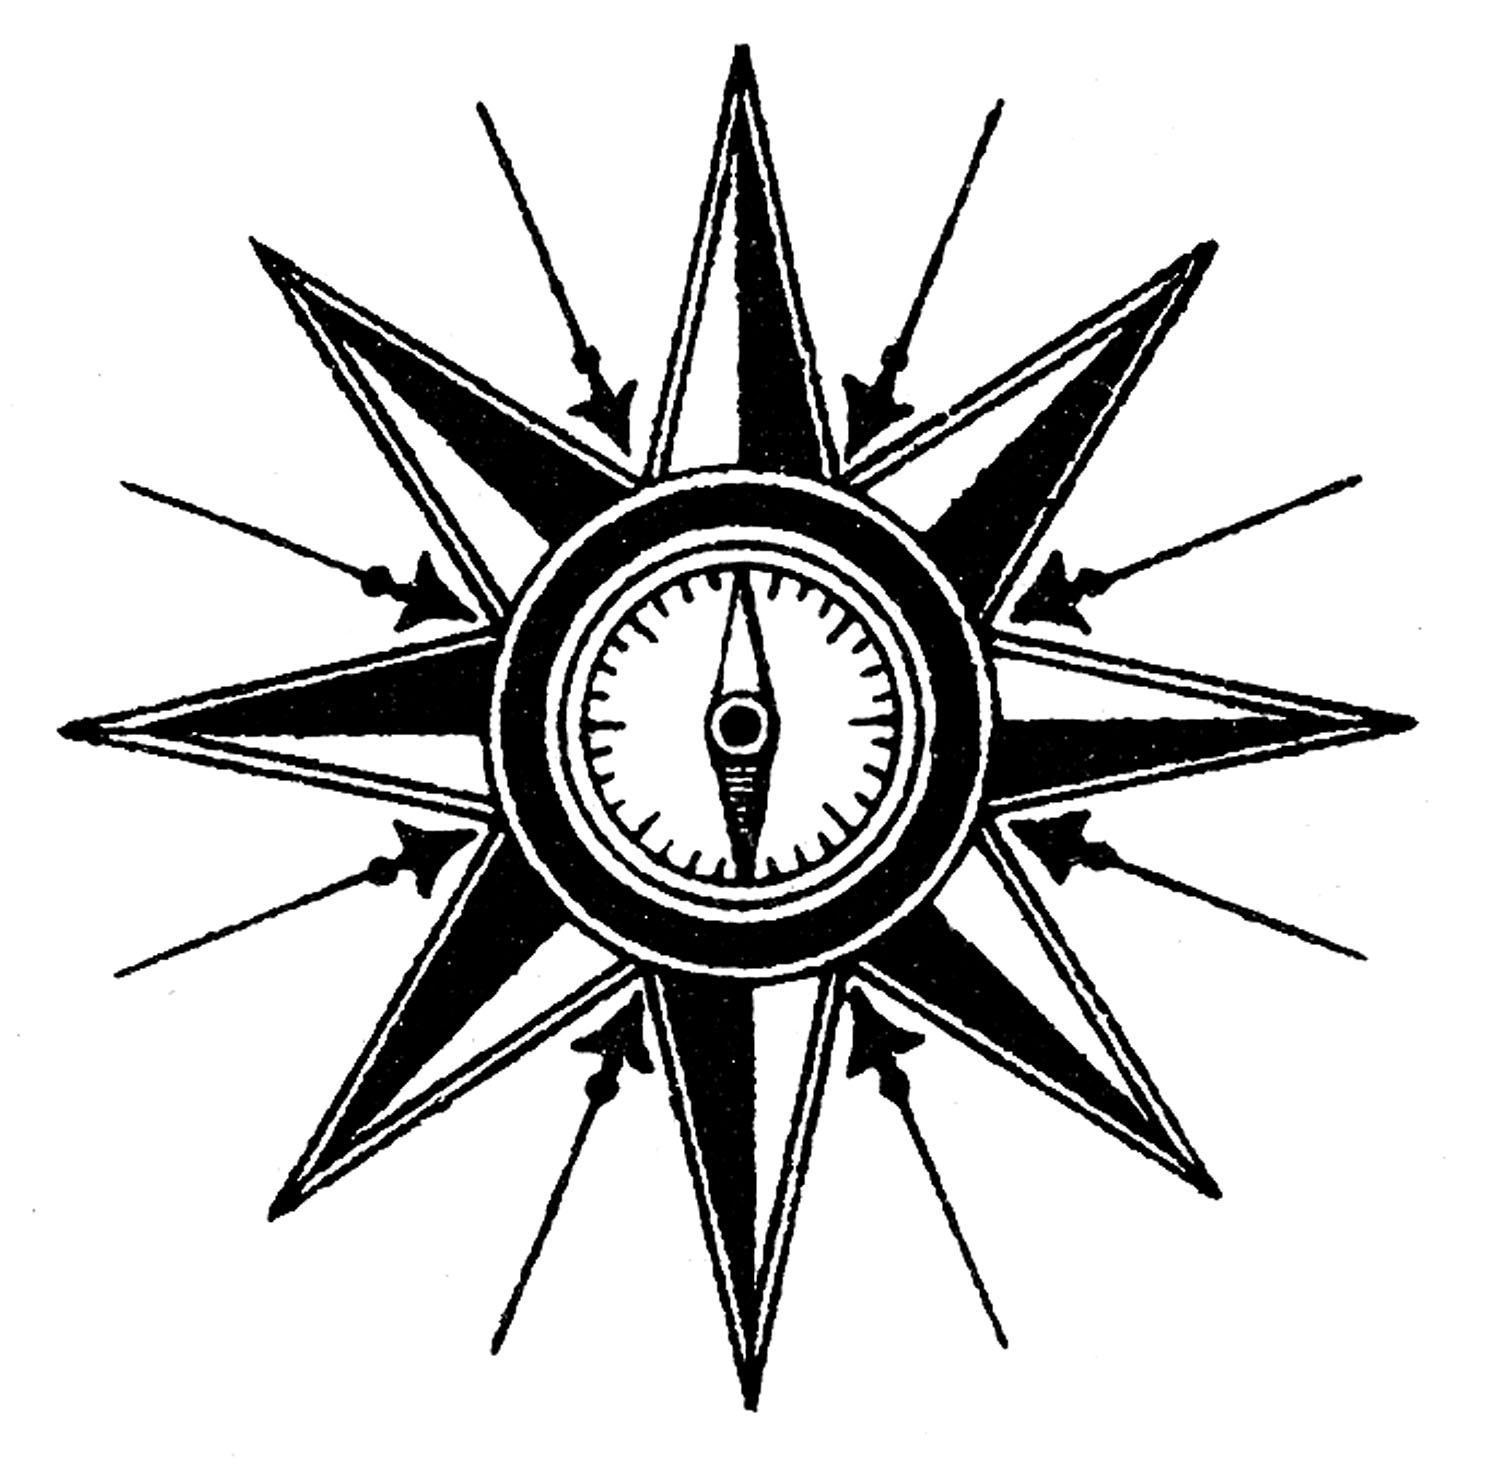 Free Compass Graphic, Download Free Clip Art, Free Clip Art.